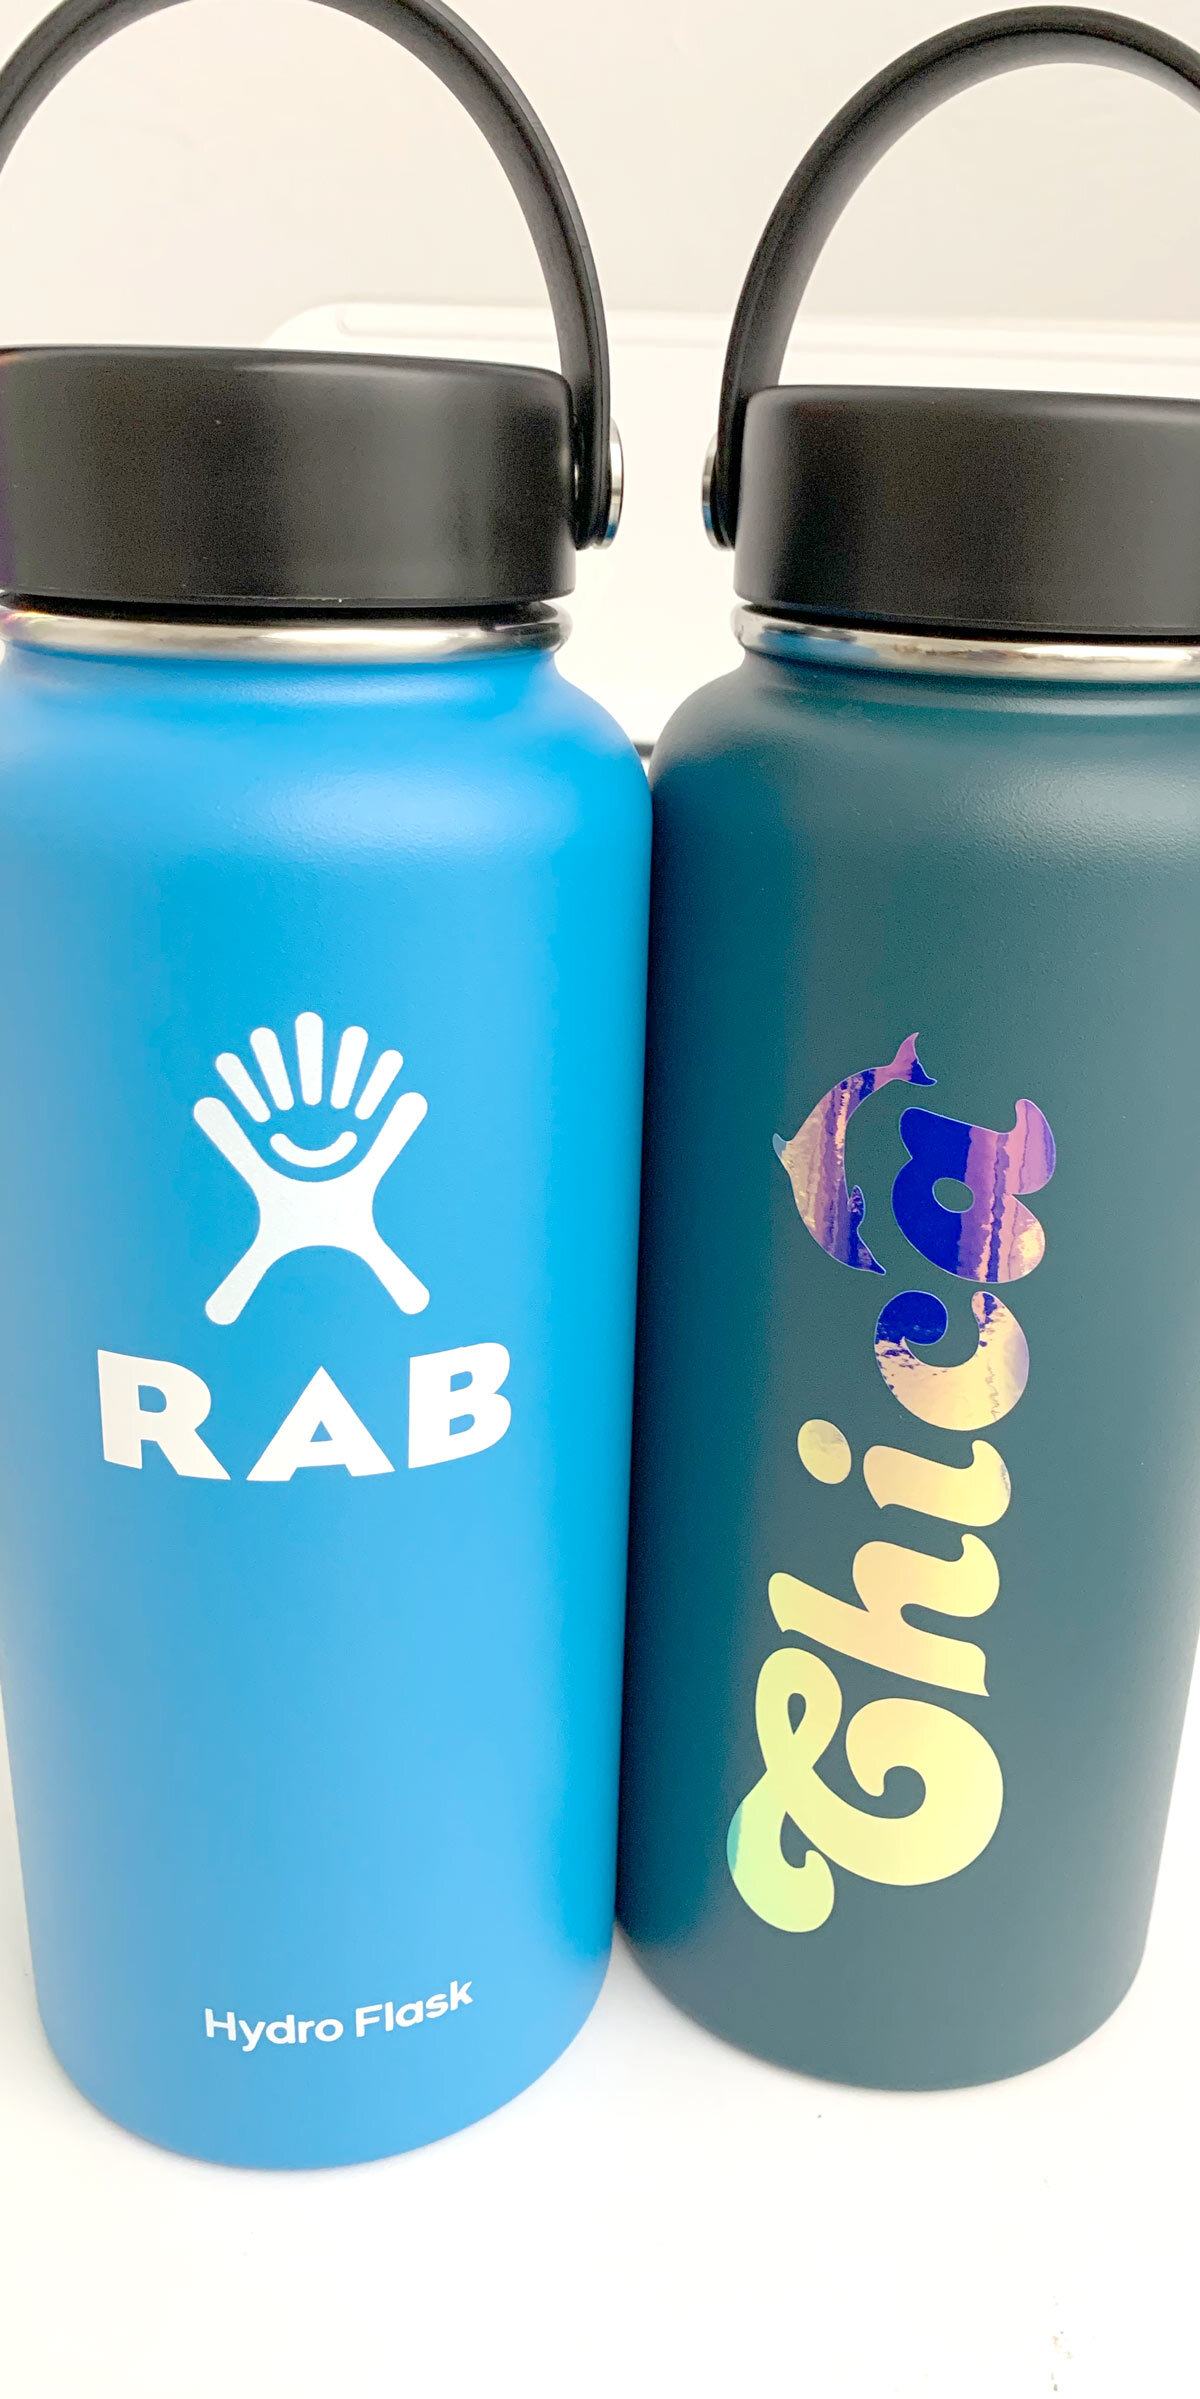 hydroflask-personalized-cricut-maker-w.jpg